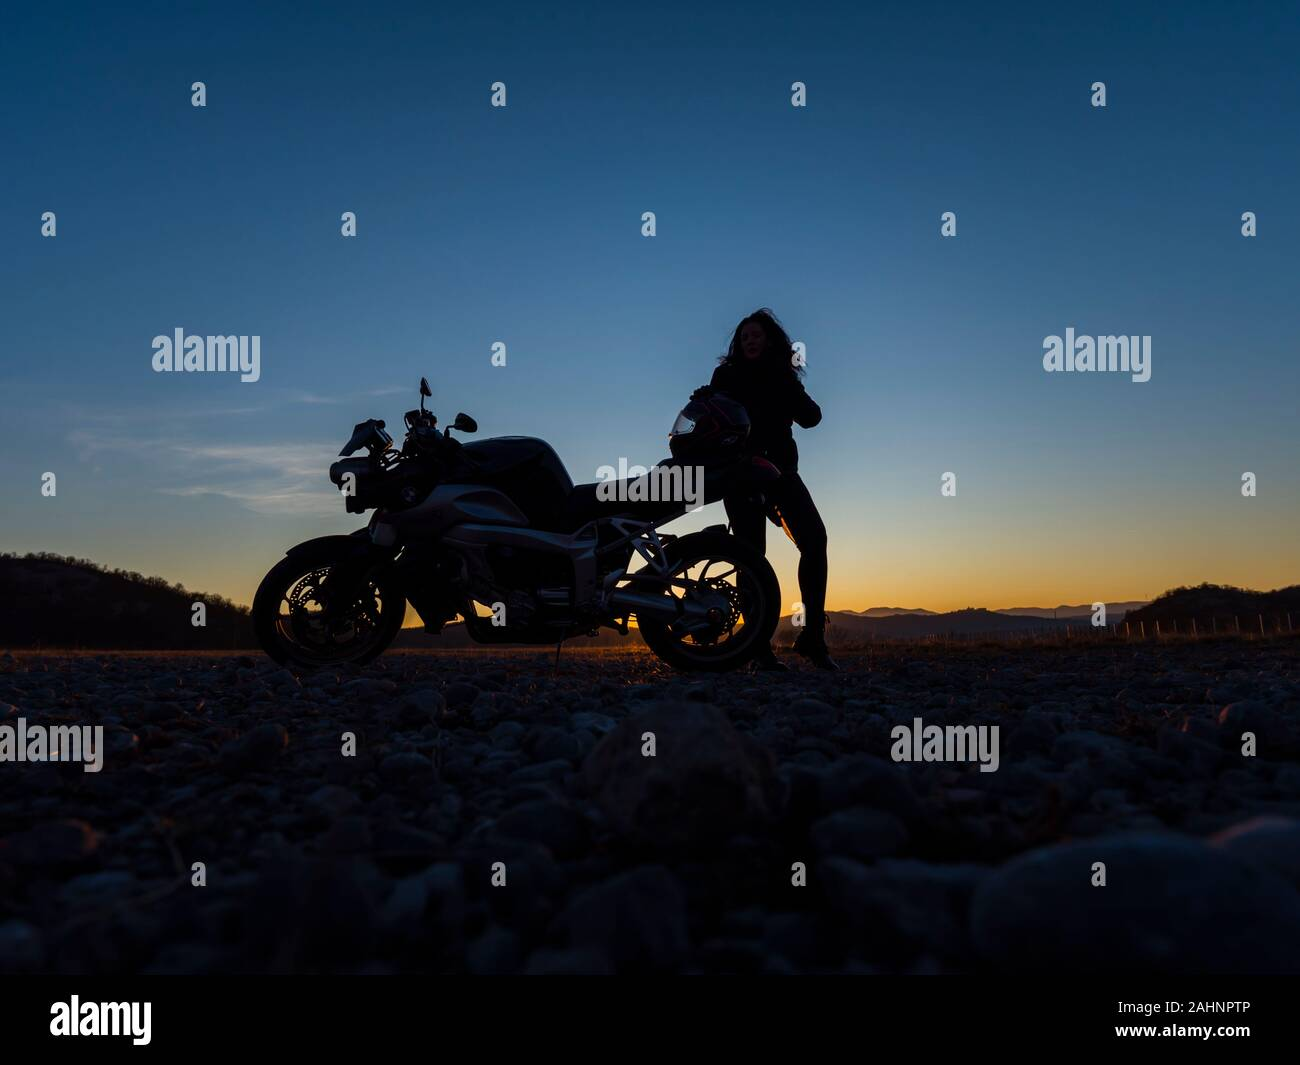 Sunset scenery scenic female motorcycle driver stretching her legs standing besides next to behind vehicle Stock Photo